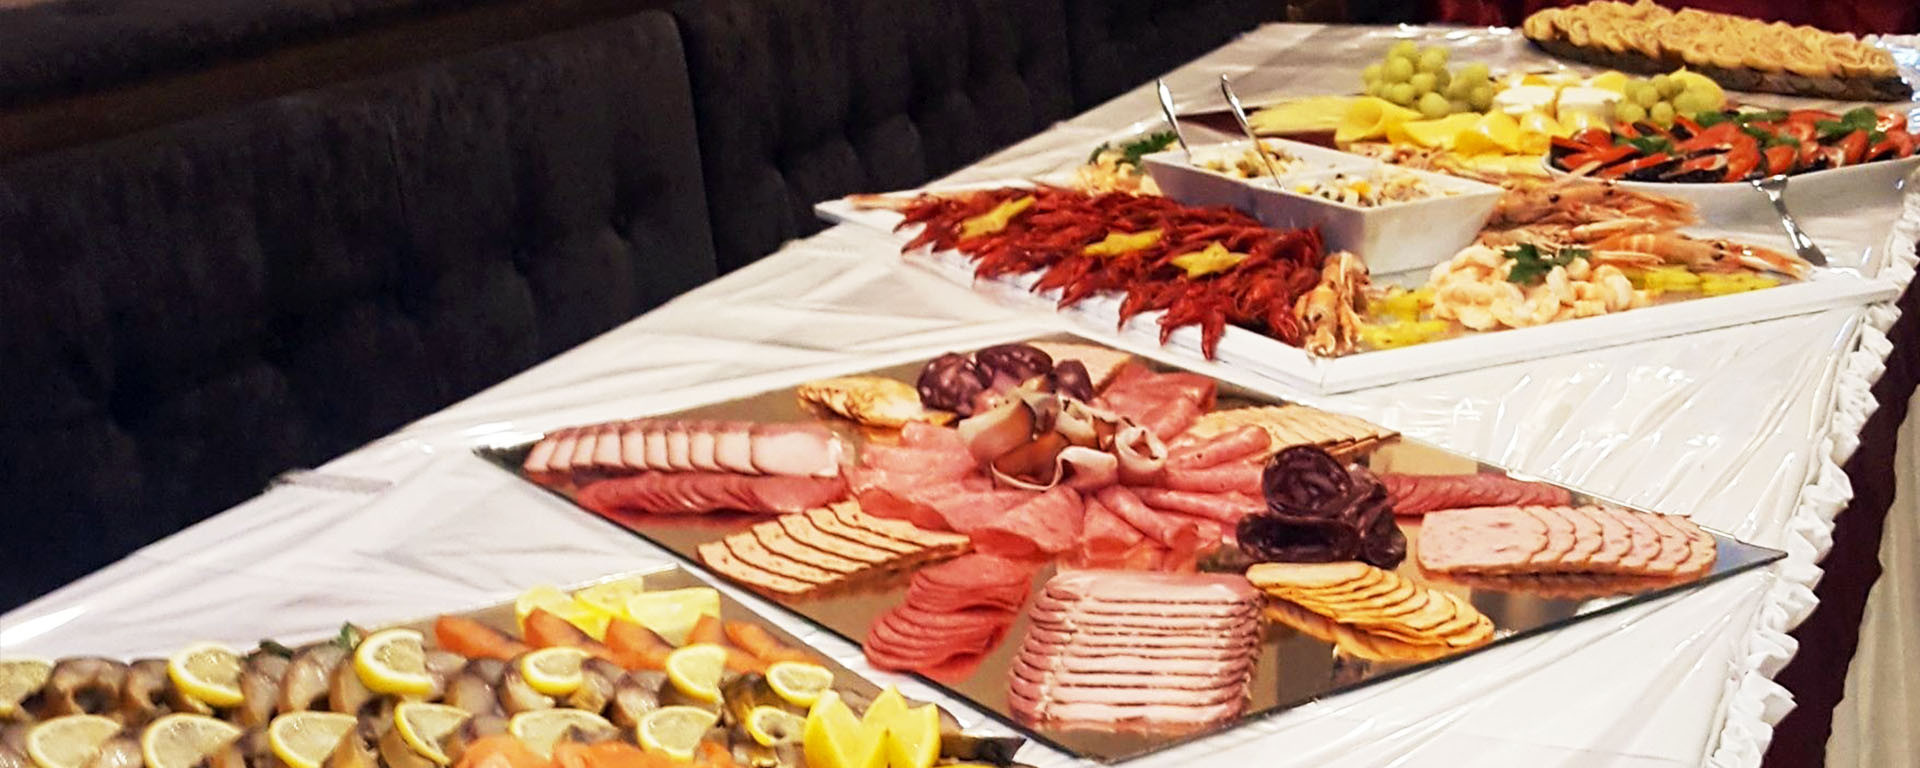 Partyservice & Event-Catering in 86551 Aichach bei Dasing/ Augsburg